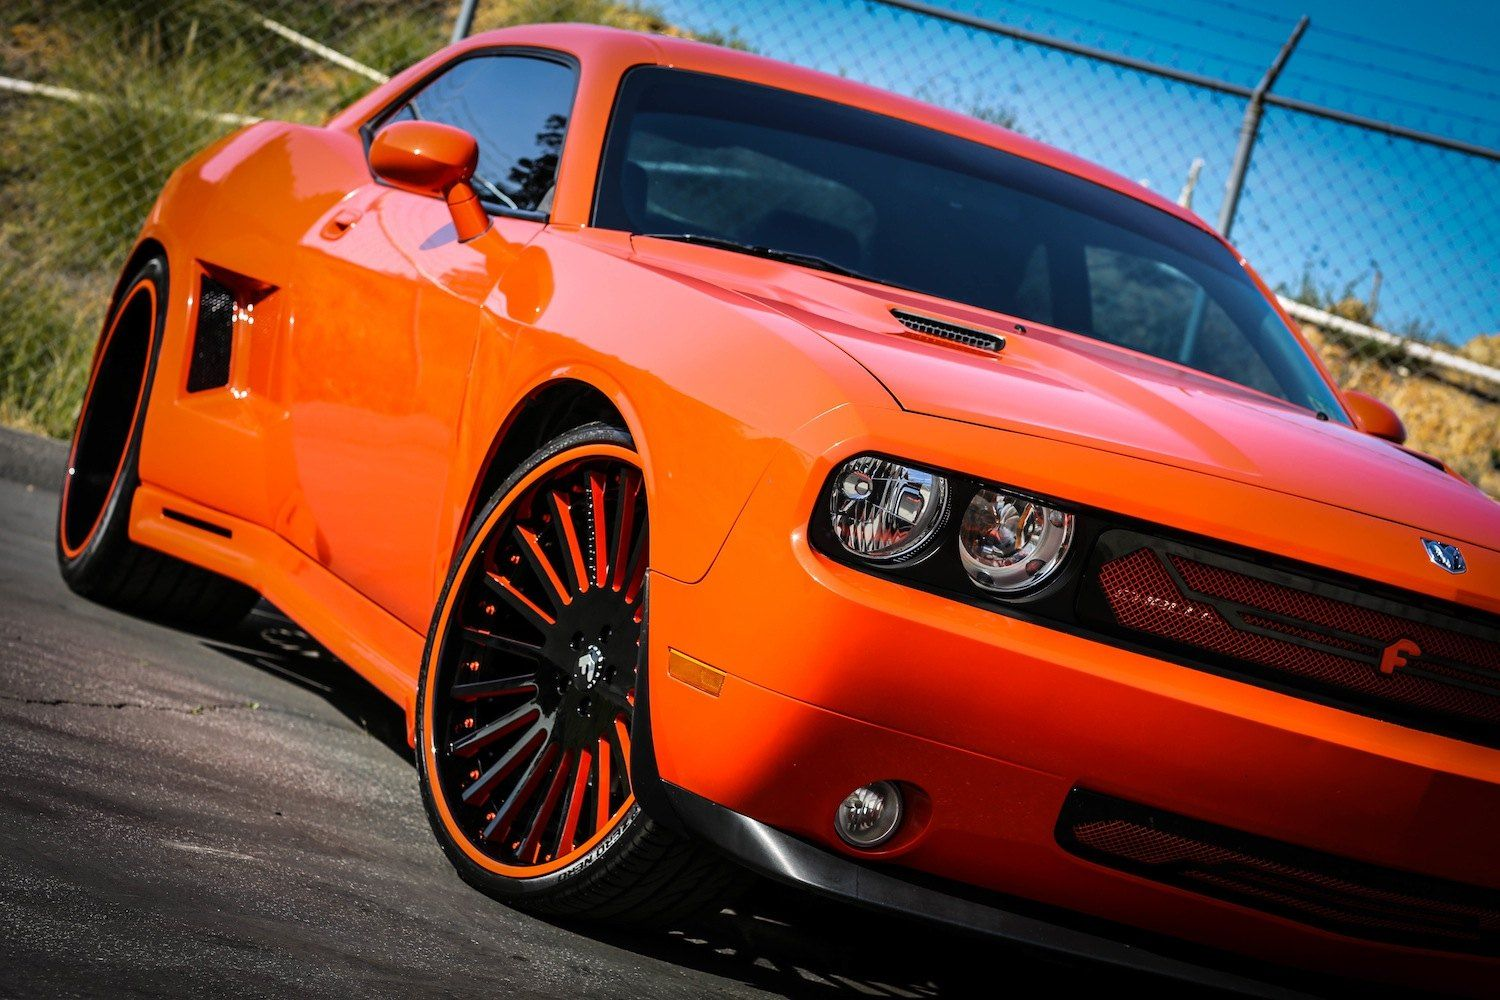 Forgiato Dodge Challenger With A Widebody Kit In 2020 Dodge Challenger Challenger Wheels Challenger